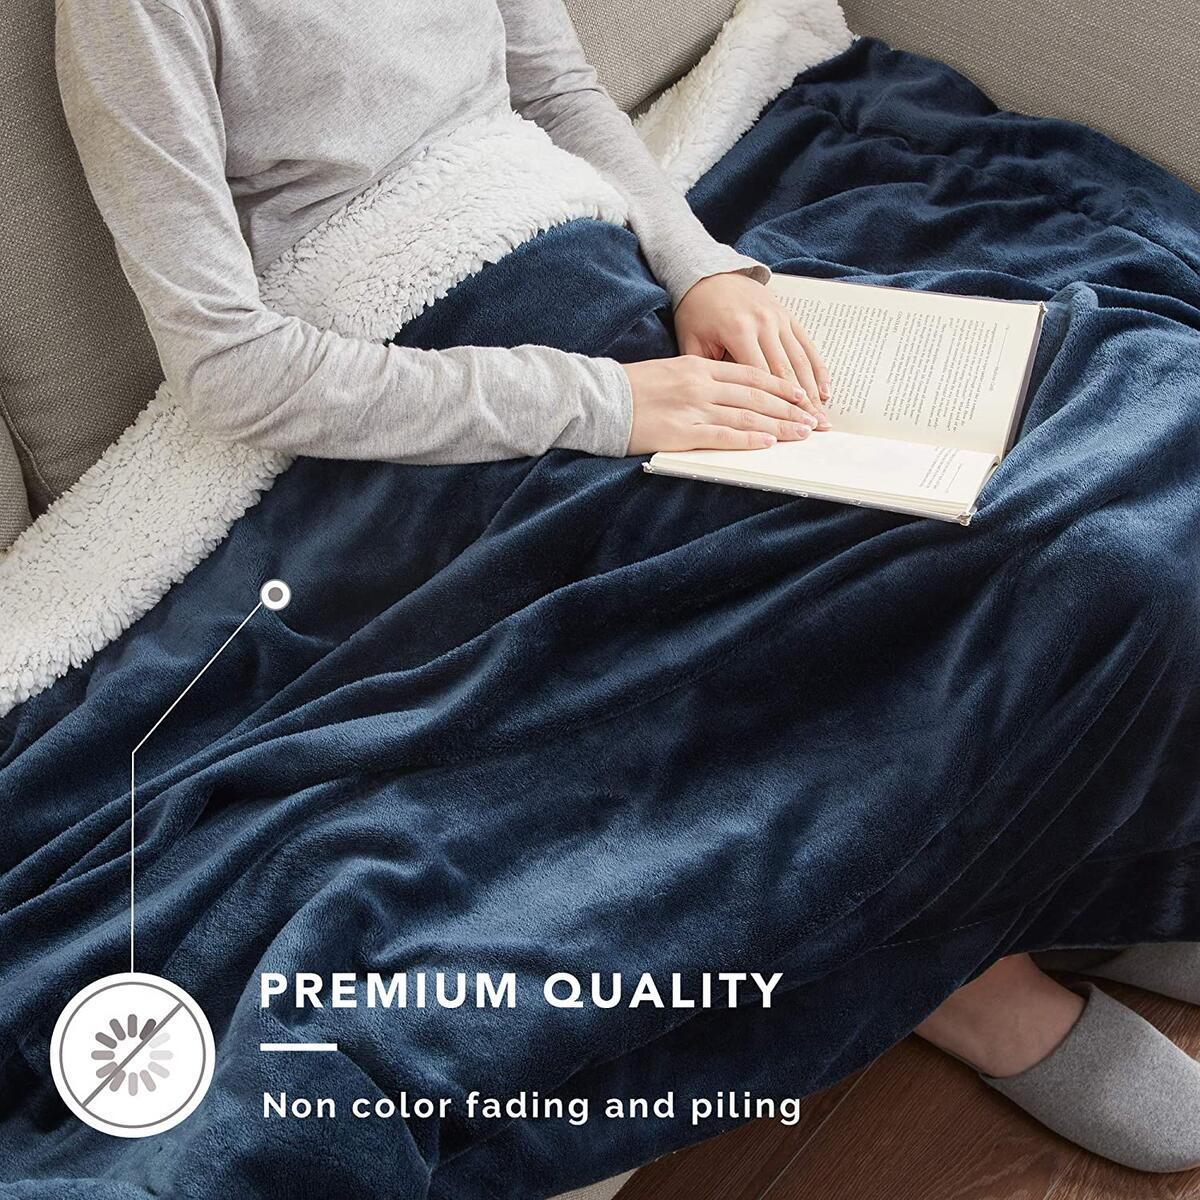 QUEEN Size ANY COLOR Degrees of Comfort Reversible Sherpa Queen Blanket for Bed - Warm Fuzzy Sherpa & Soft Plush Fleece, Warm Blankets for Winter   Couch, Bed, Camping   4 Sizes 10 Colors, Great Gift, Queen 90x90 QUEEN Size ANY COLOR